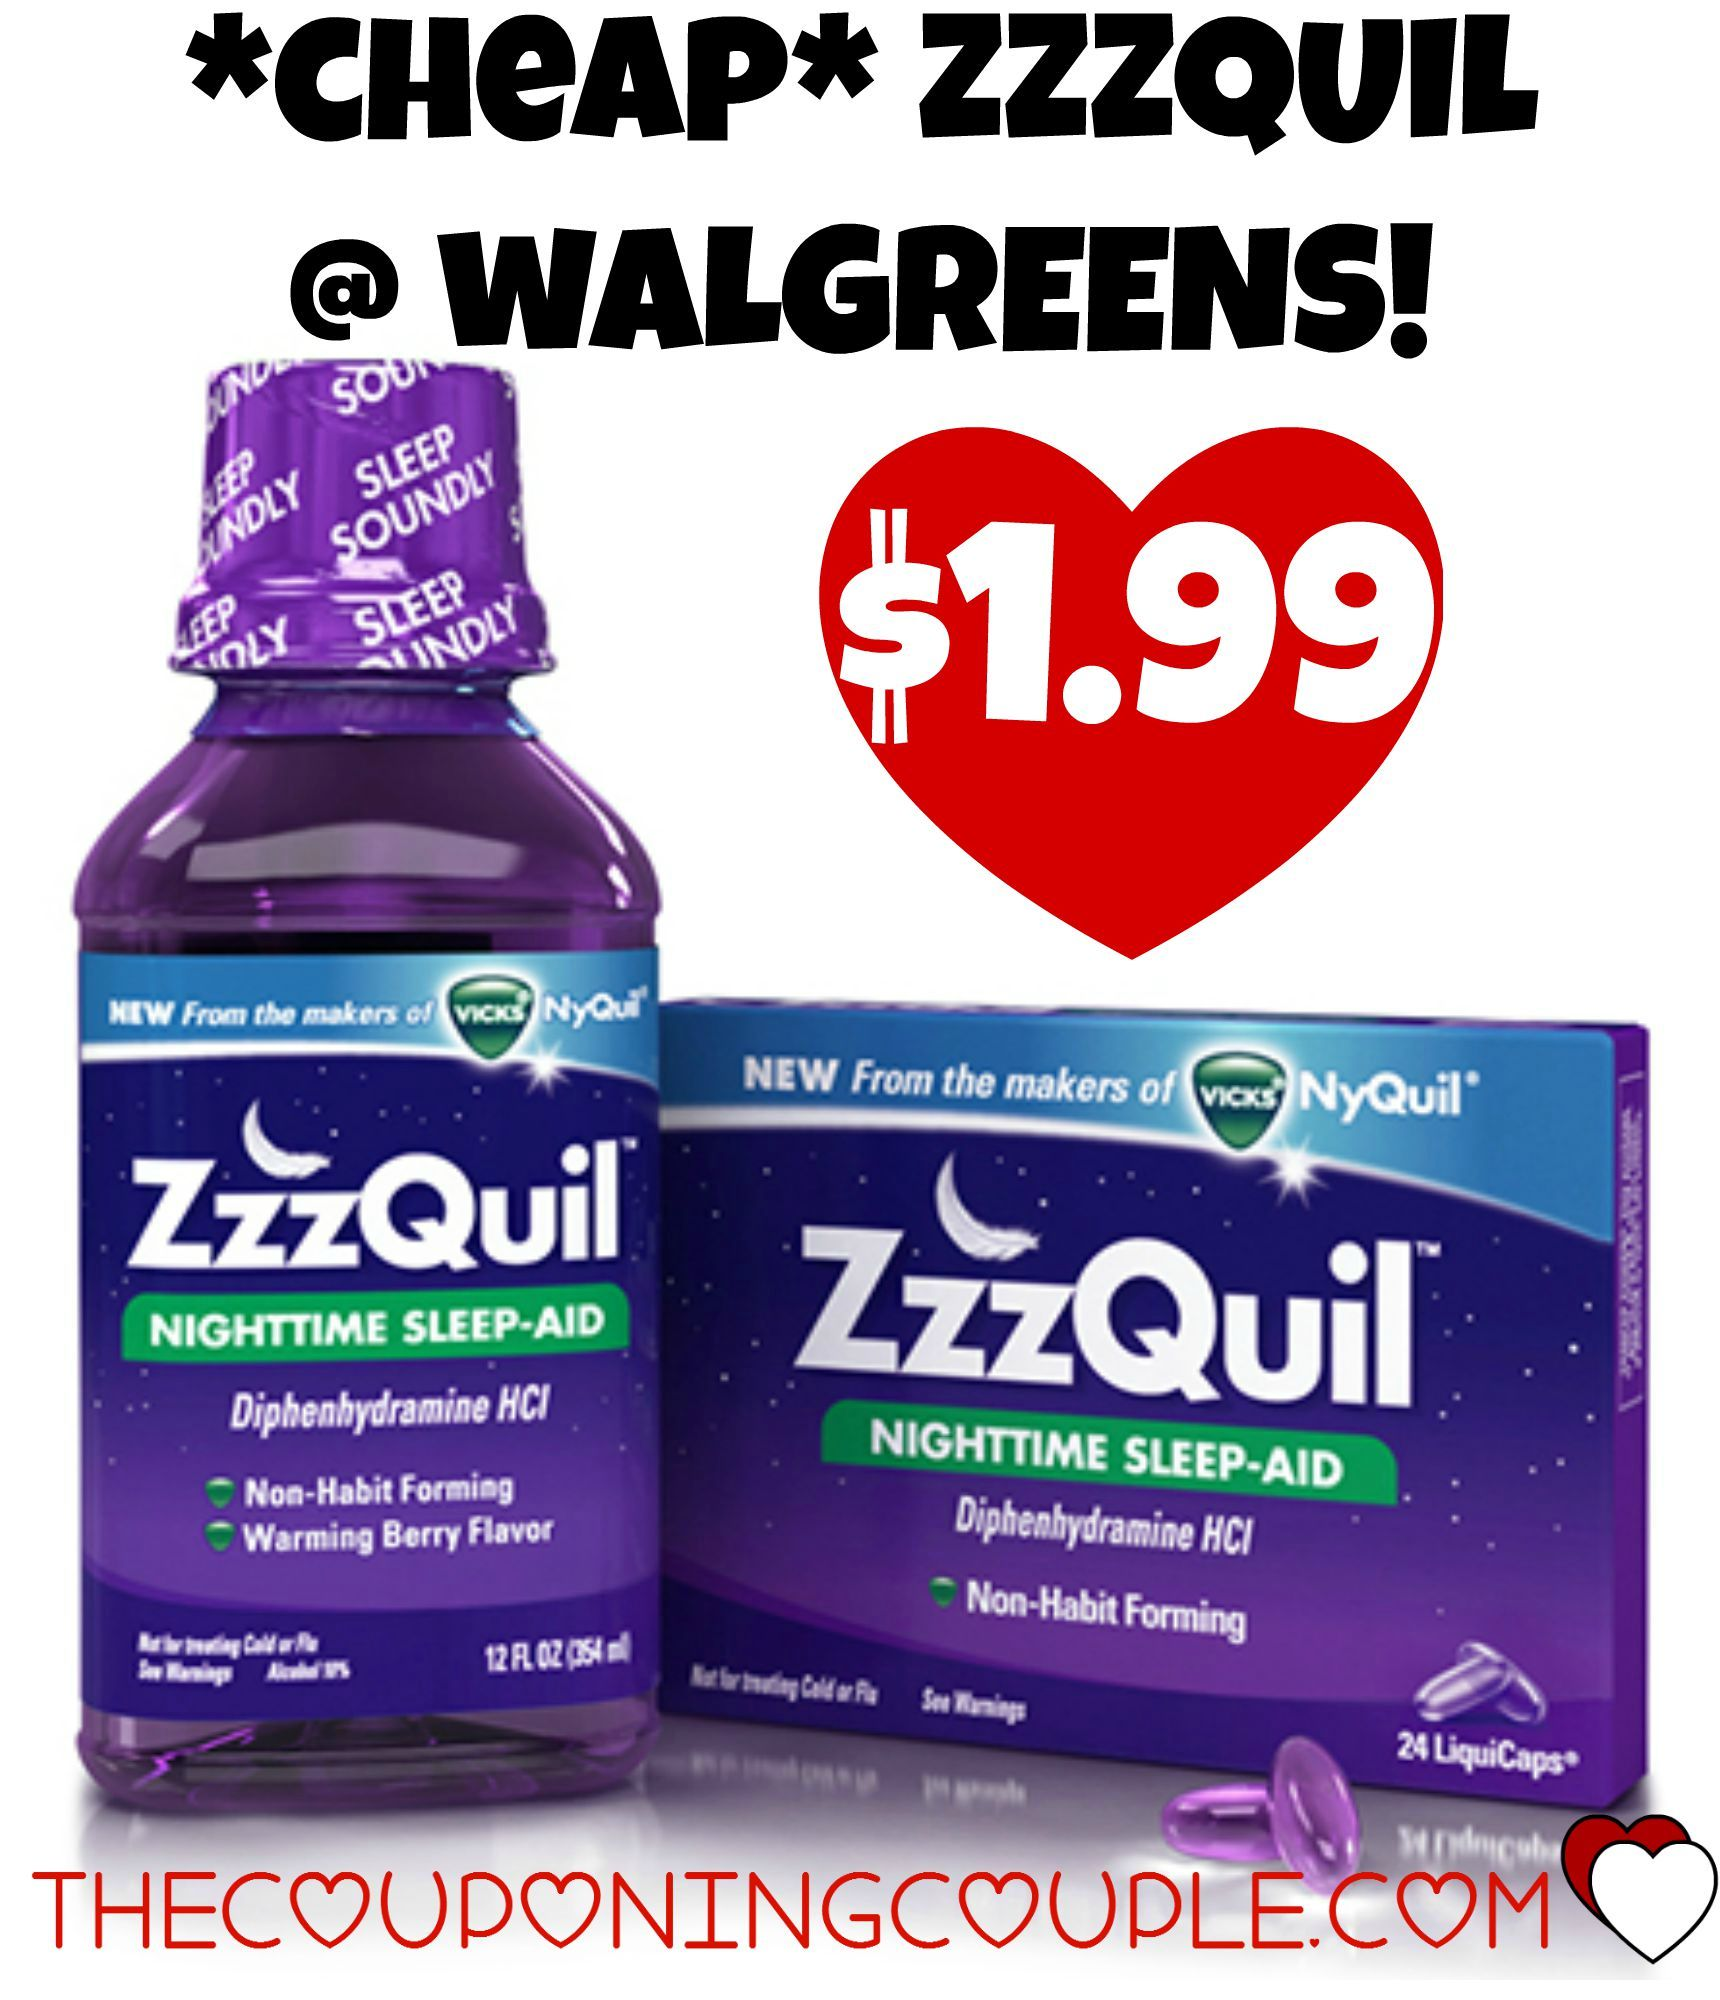 Cheap Zzzquil Just 1 99 Walgreens Reg 7 99 Walgreens Sleep Lover Coupons